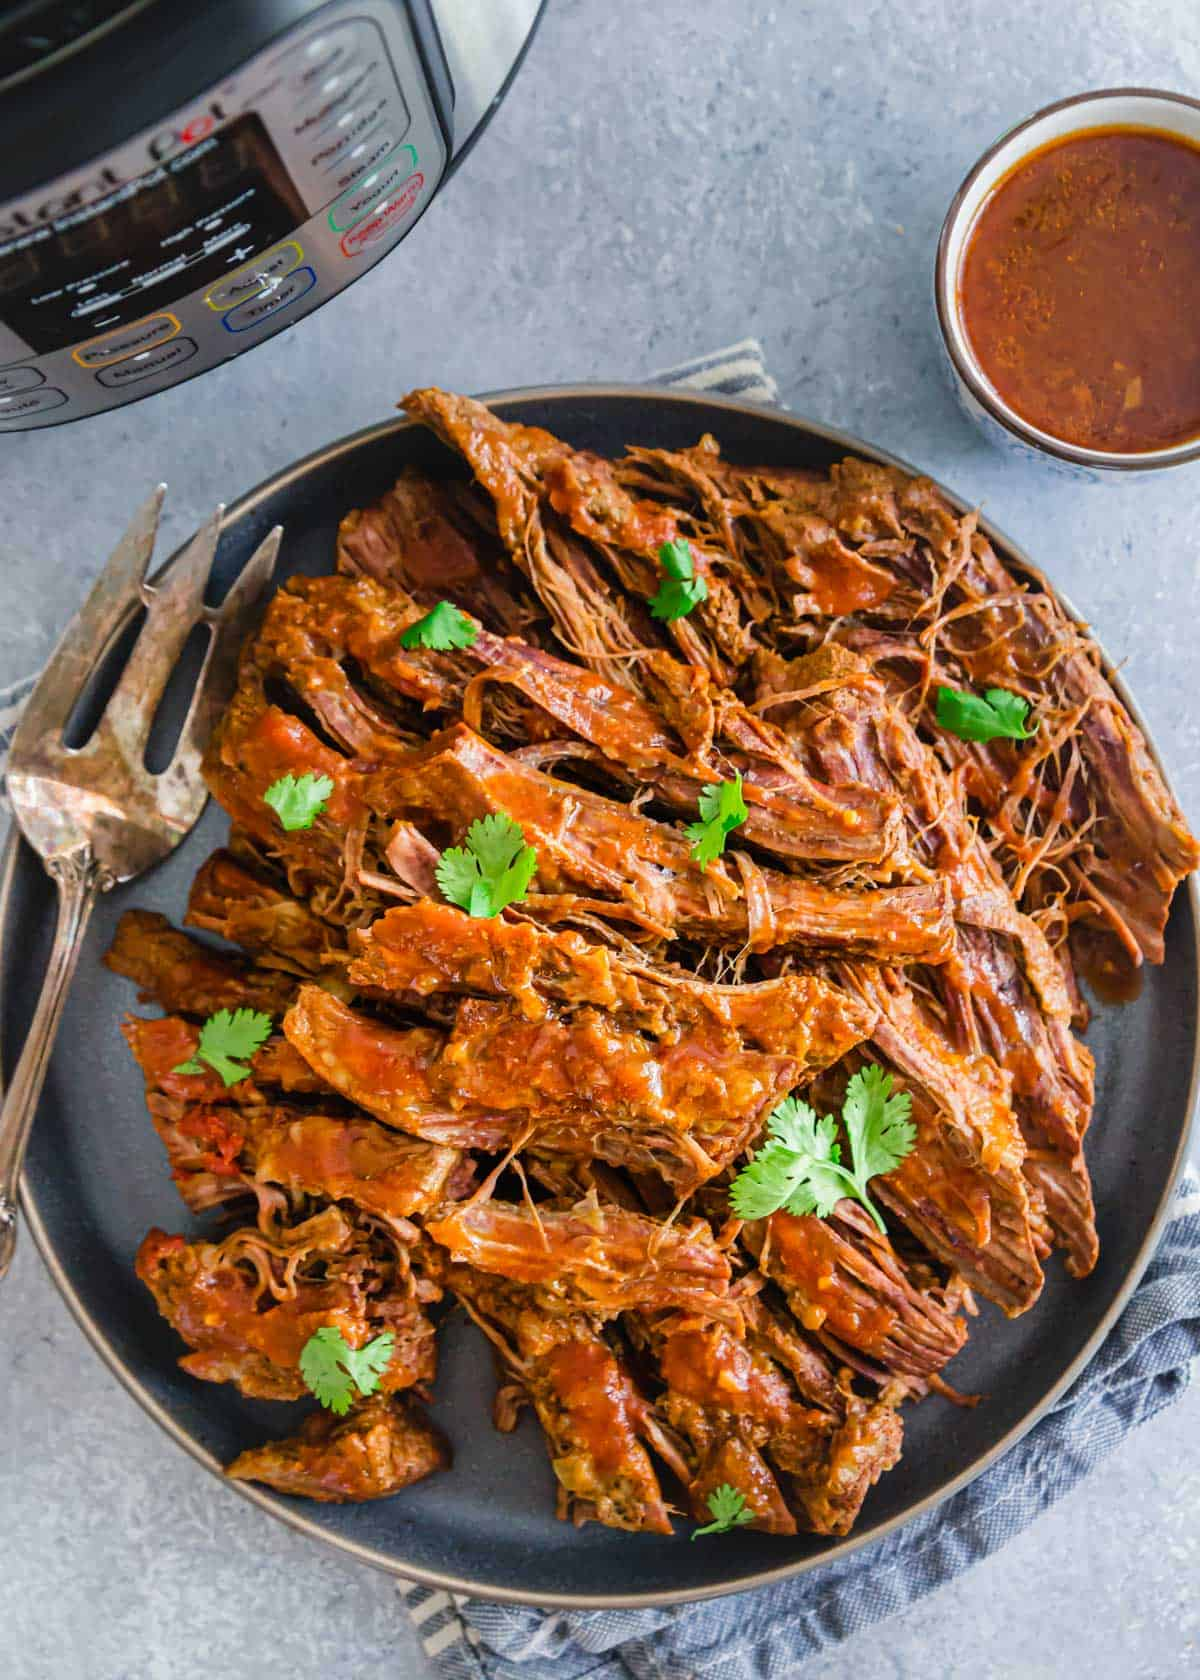 Easy Instant Pot brisket recipe with BBQ sauce.